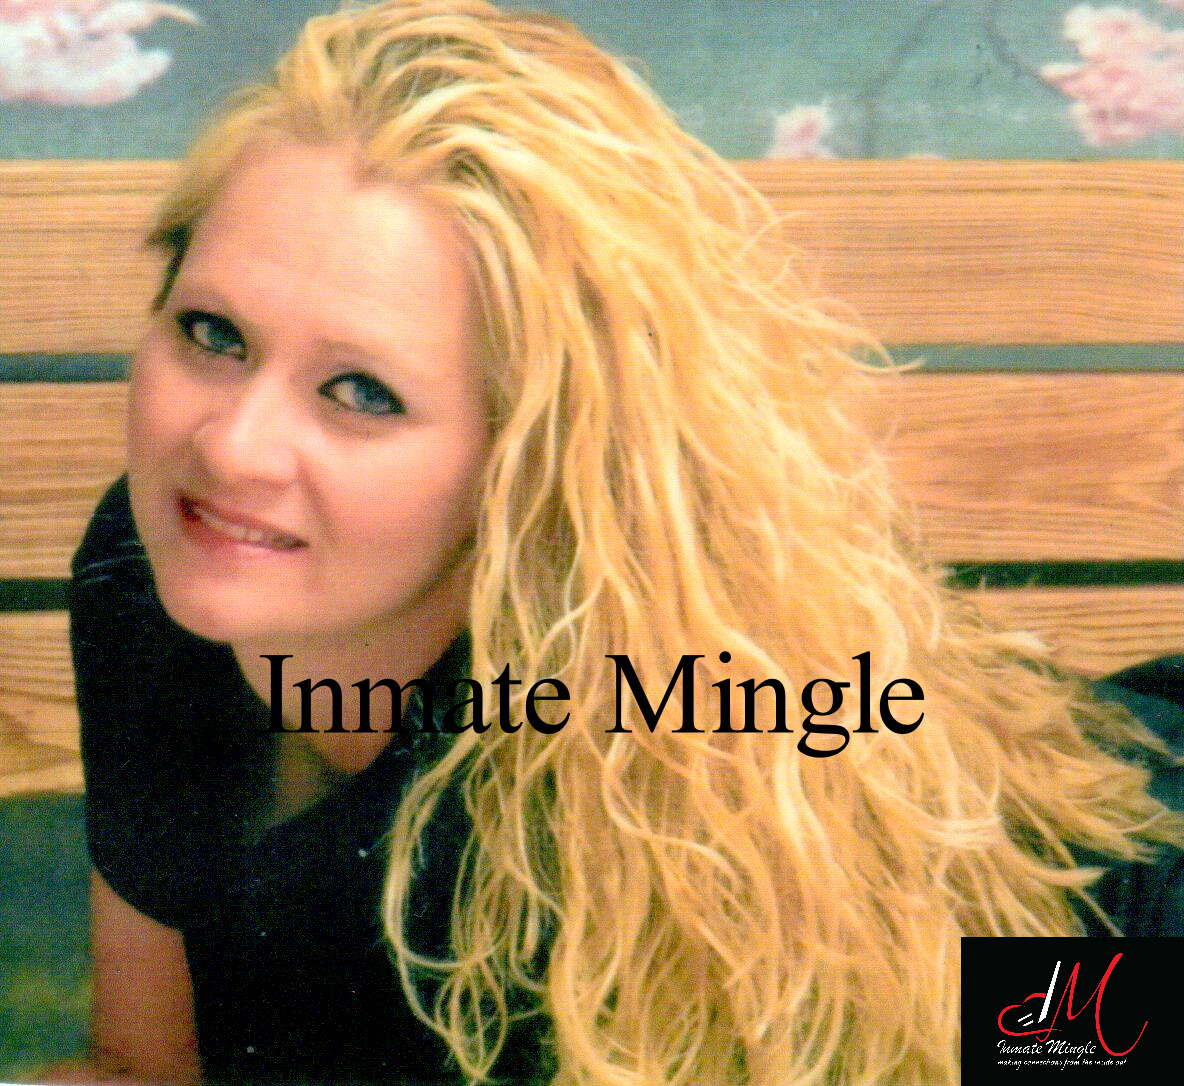 female inmate dating sites Thegrio report - online sites for dating prisoners have proliferated in recent years on the surface, these sites profess to specialize in connecting people behind bars with those seeking pen pals.